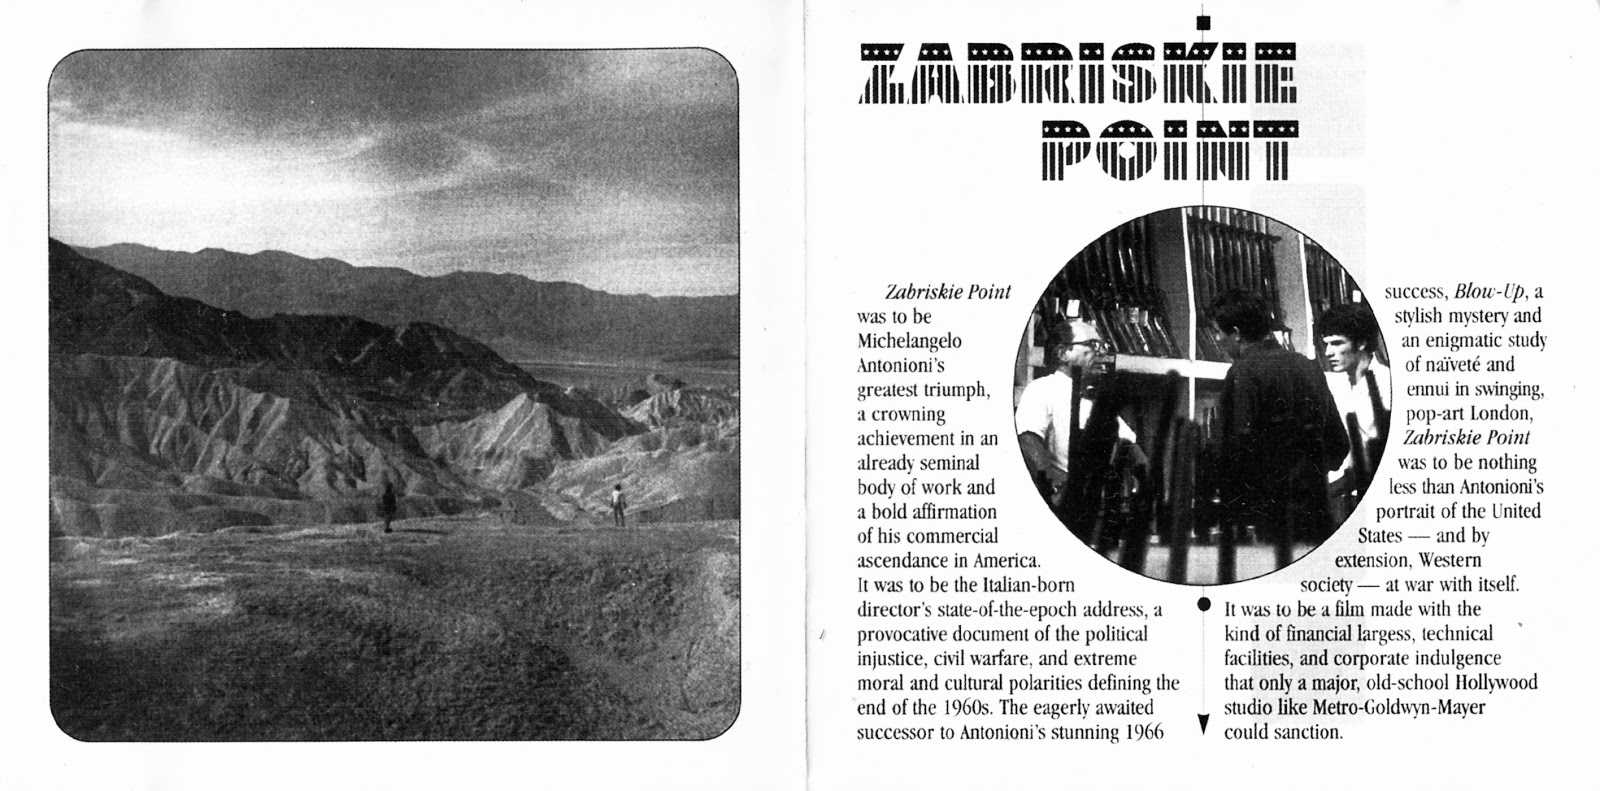 Pink Floyd Ilustrado Zabriskie Point Original Motion